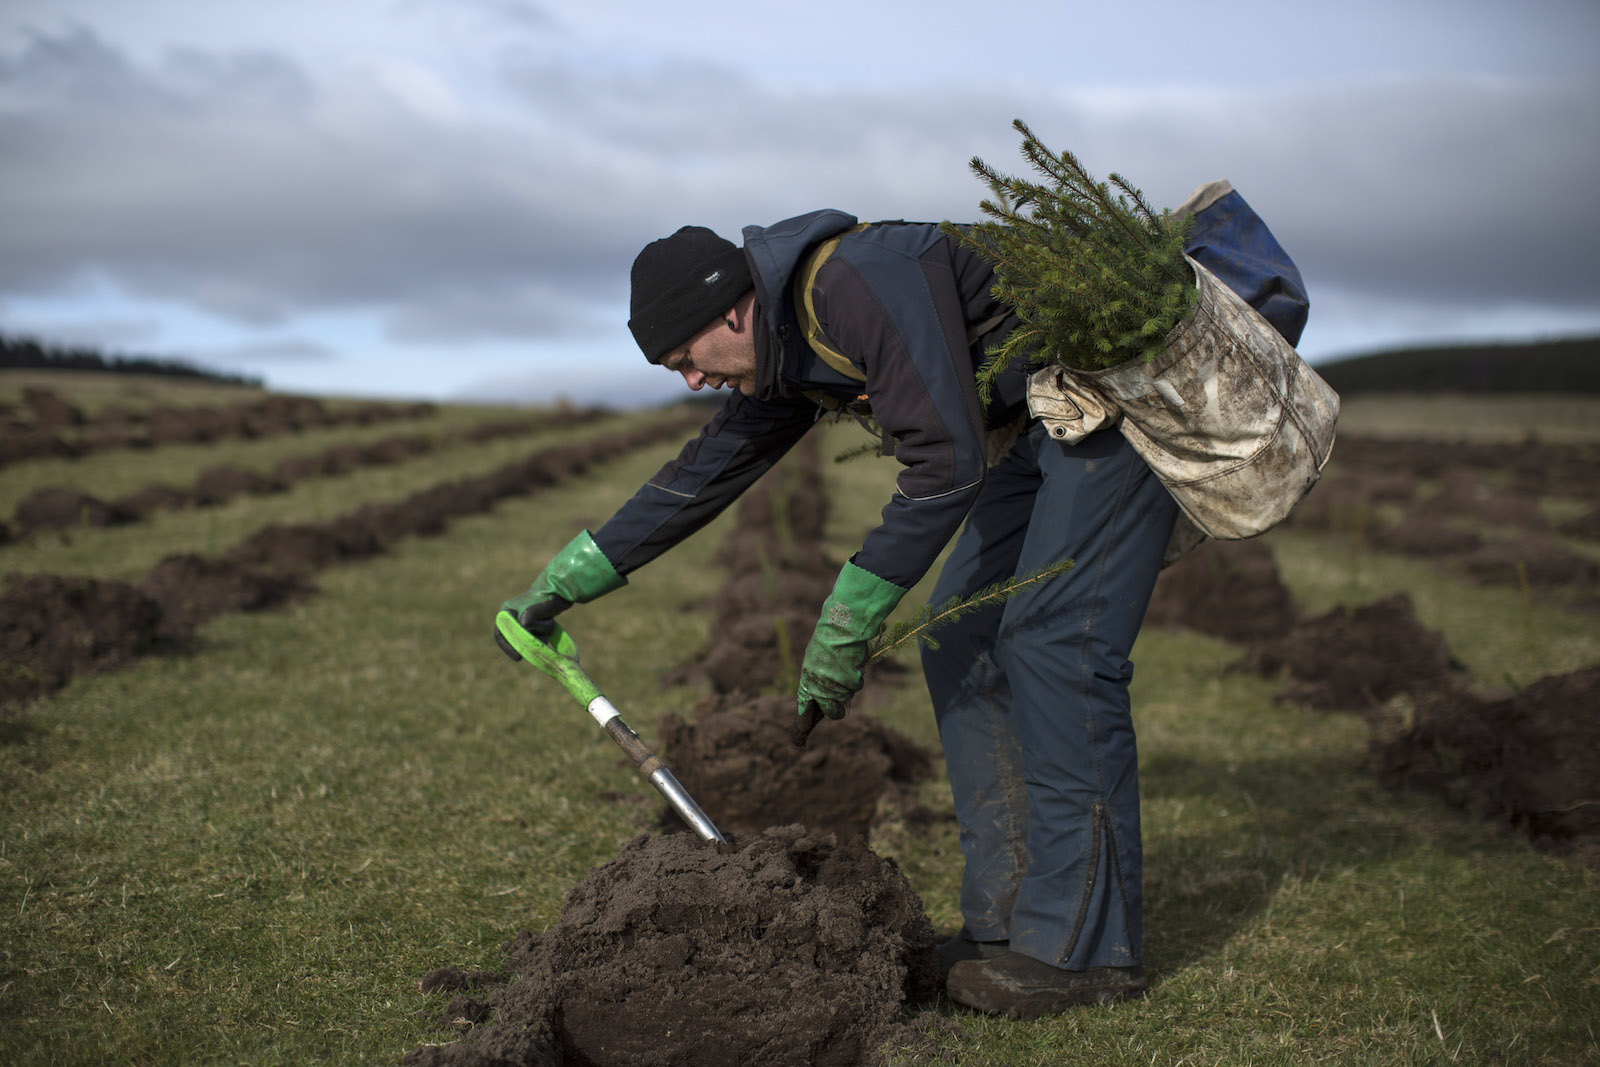 a man in a blue beanie leans over an area with overturned dirt. He carries a young tree in a bag. He is poking the dirt with a tool